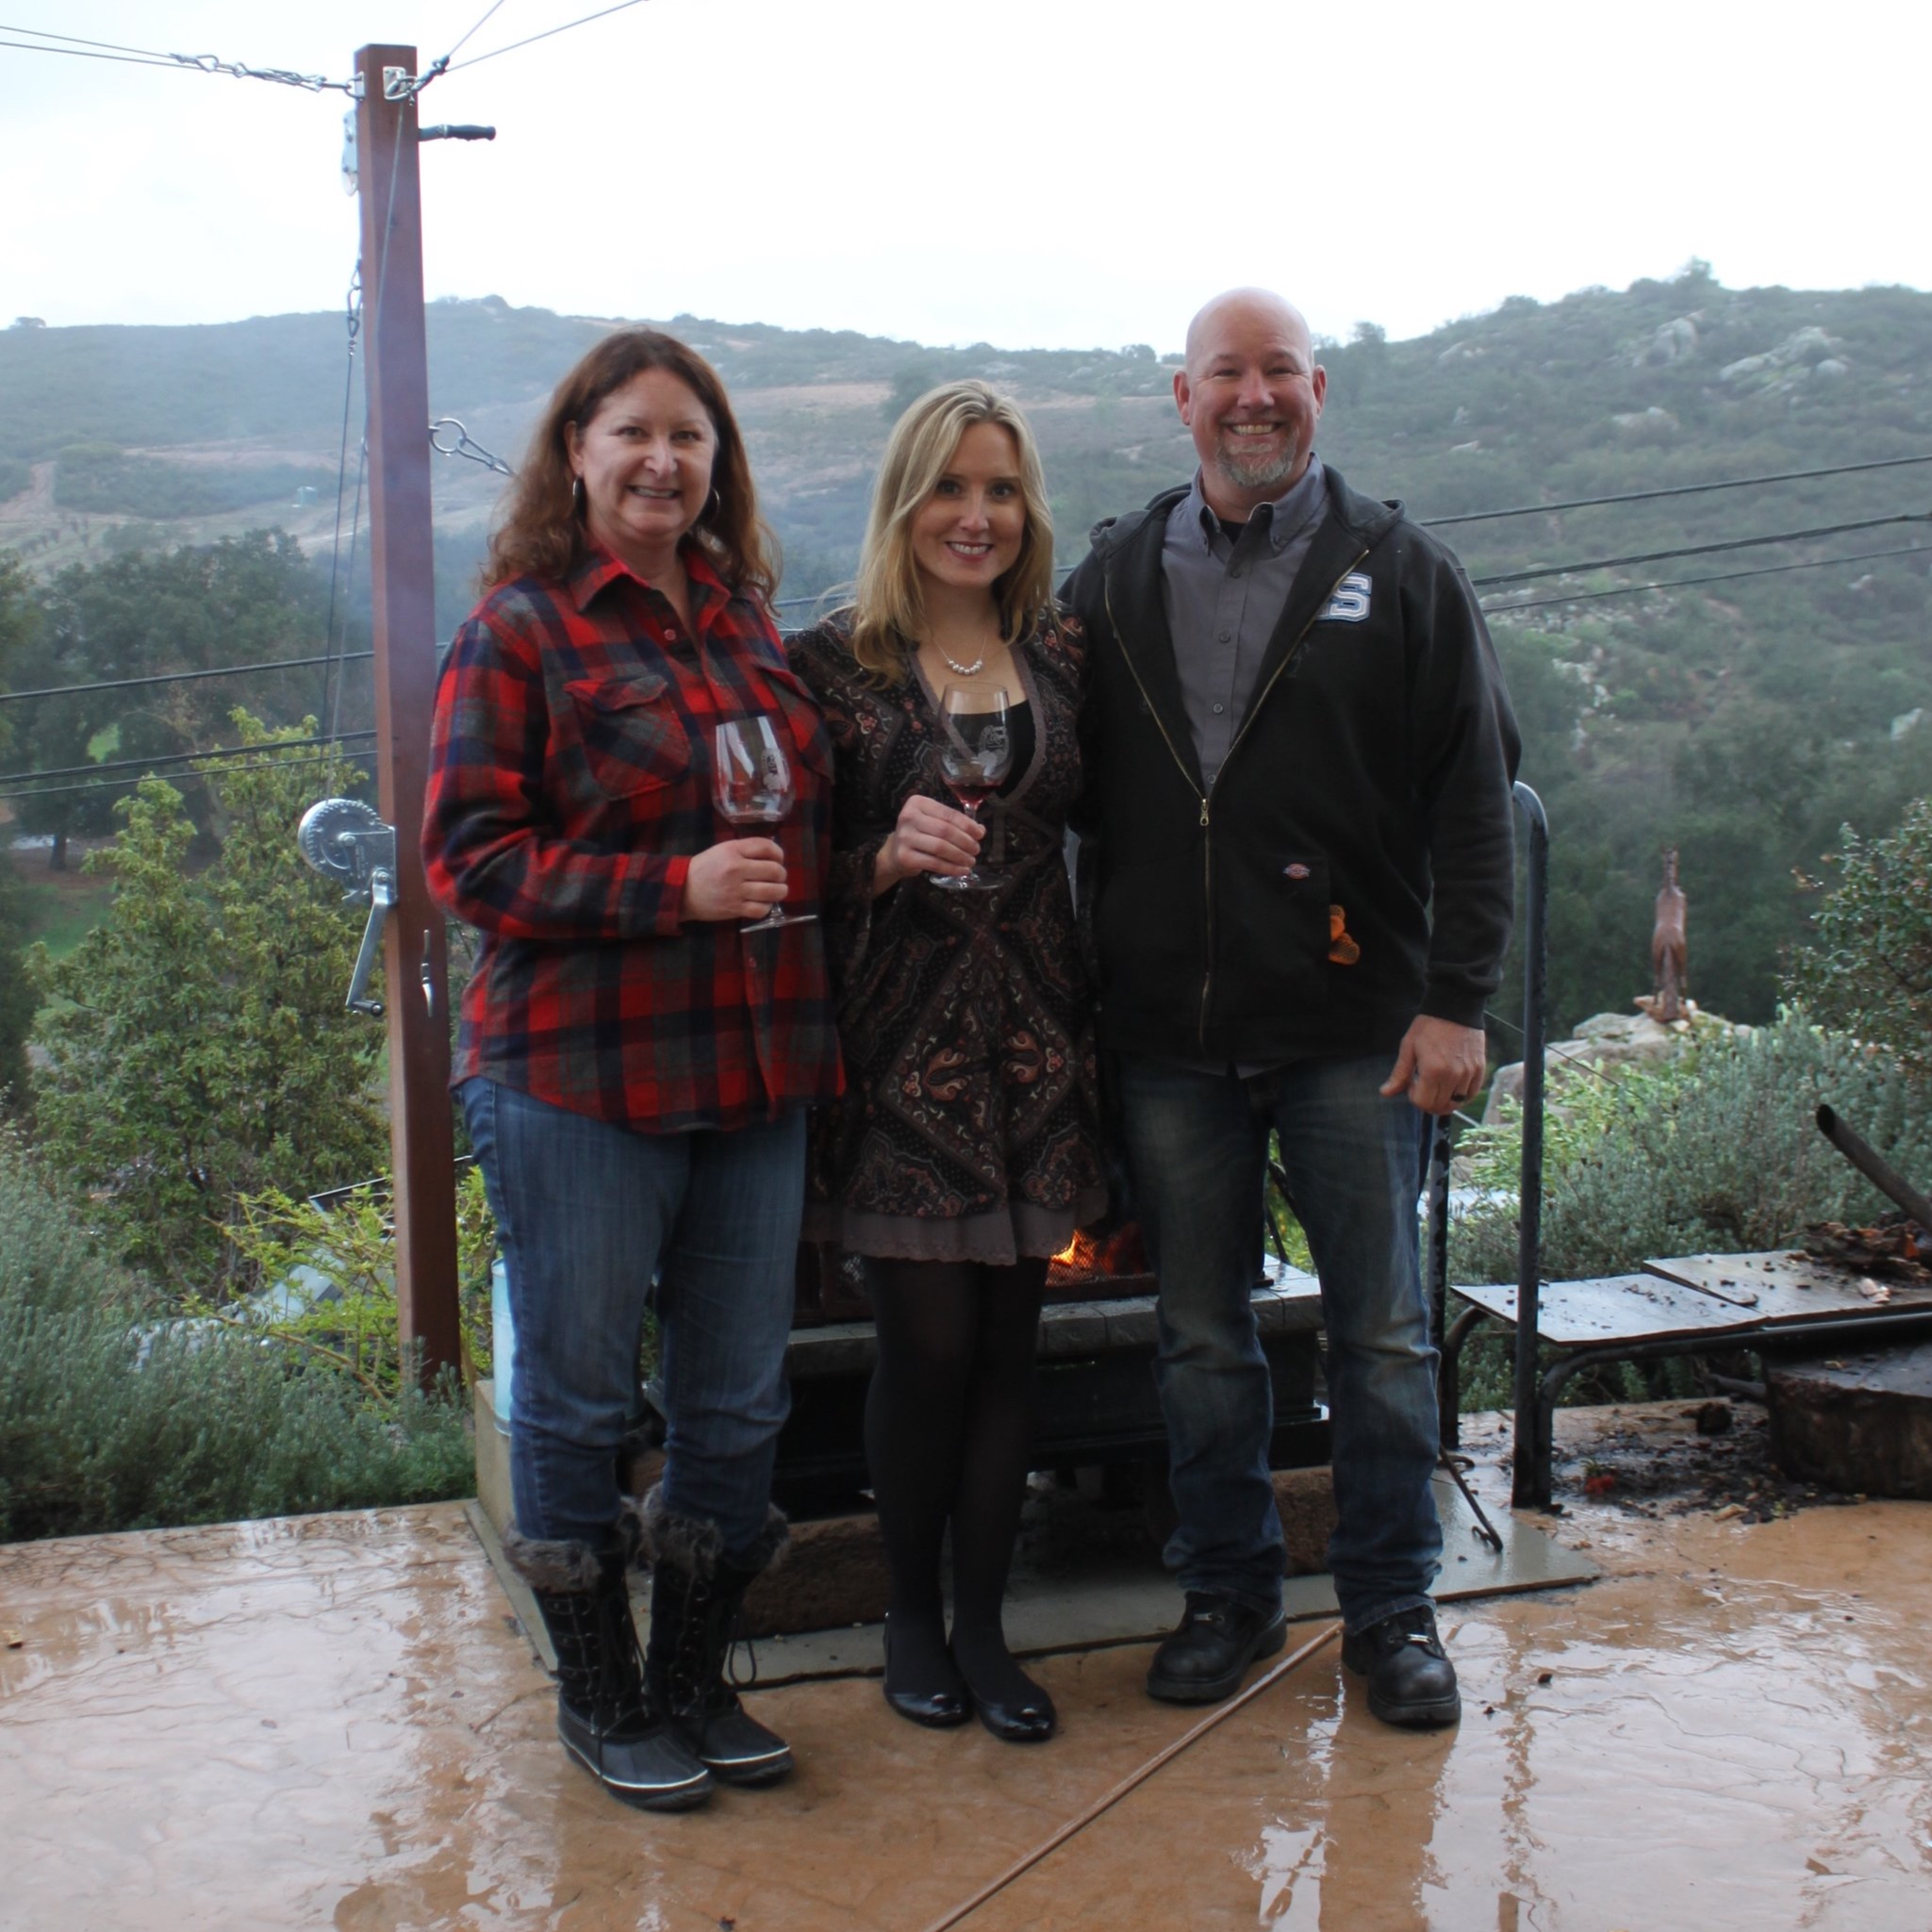 Ramona Ranch Vineyard and Winery owners Teri Kerns, left, and Micole Moore, right, with Veritas Consultants owner Meghan Vergara.  Photo by Charlene Pulsonetti